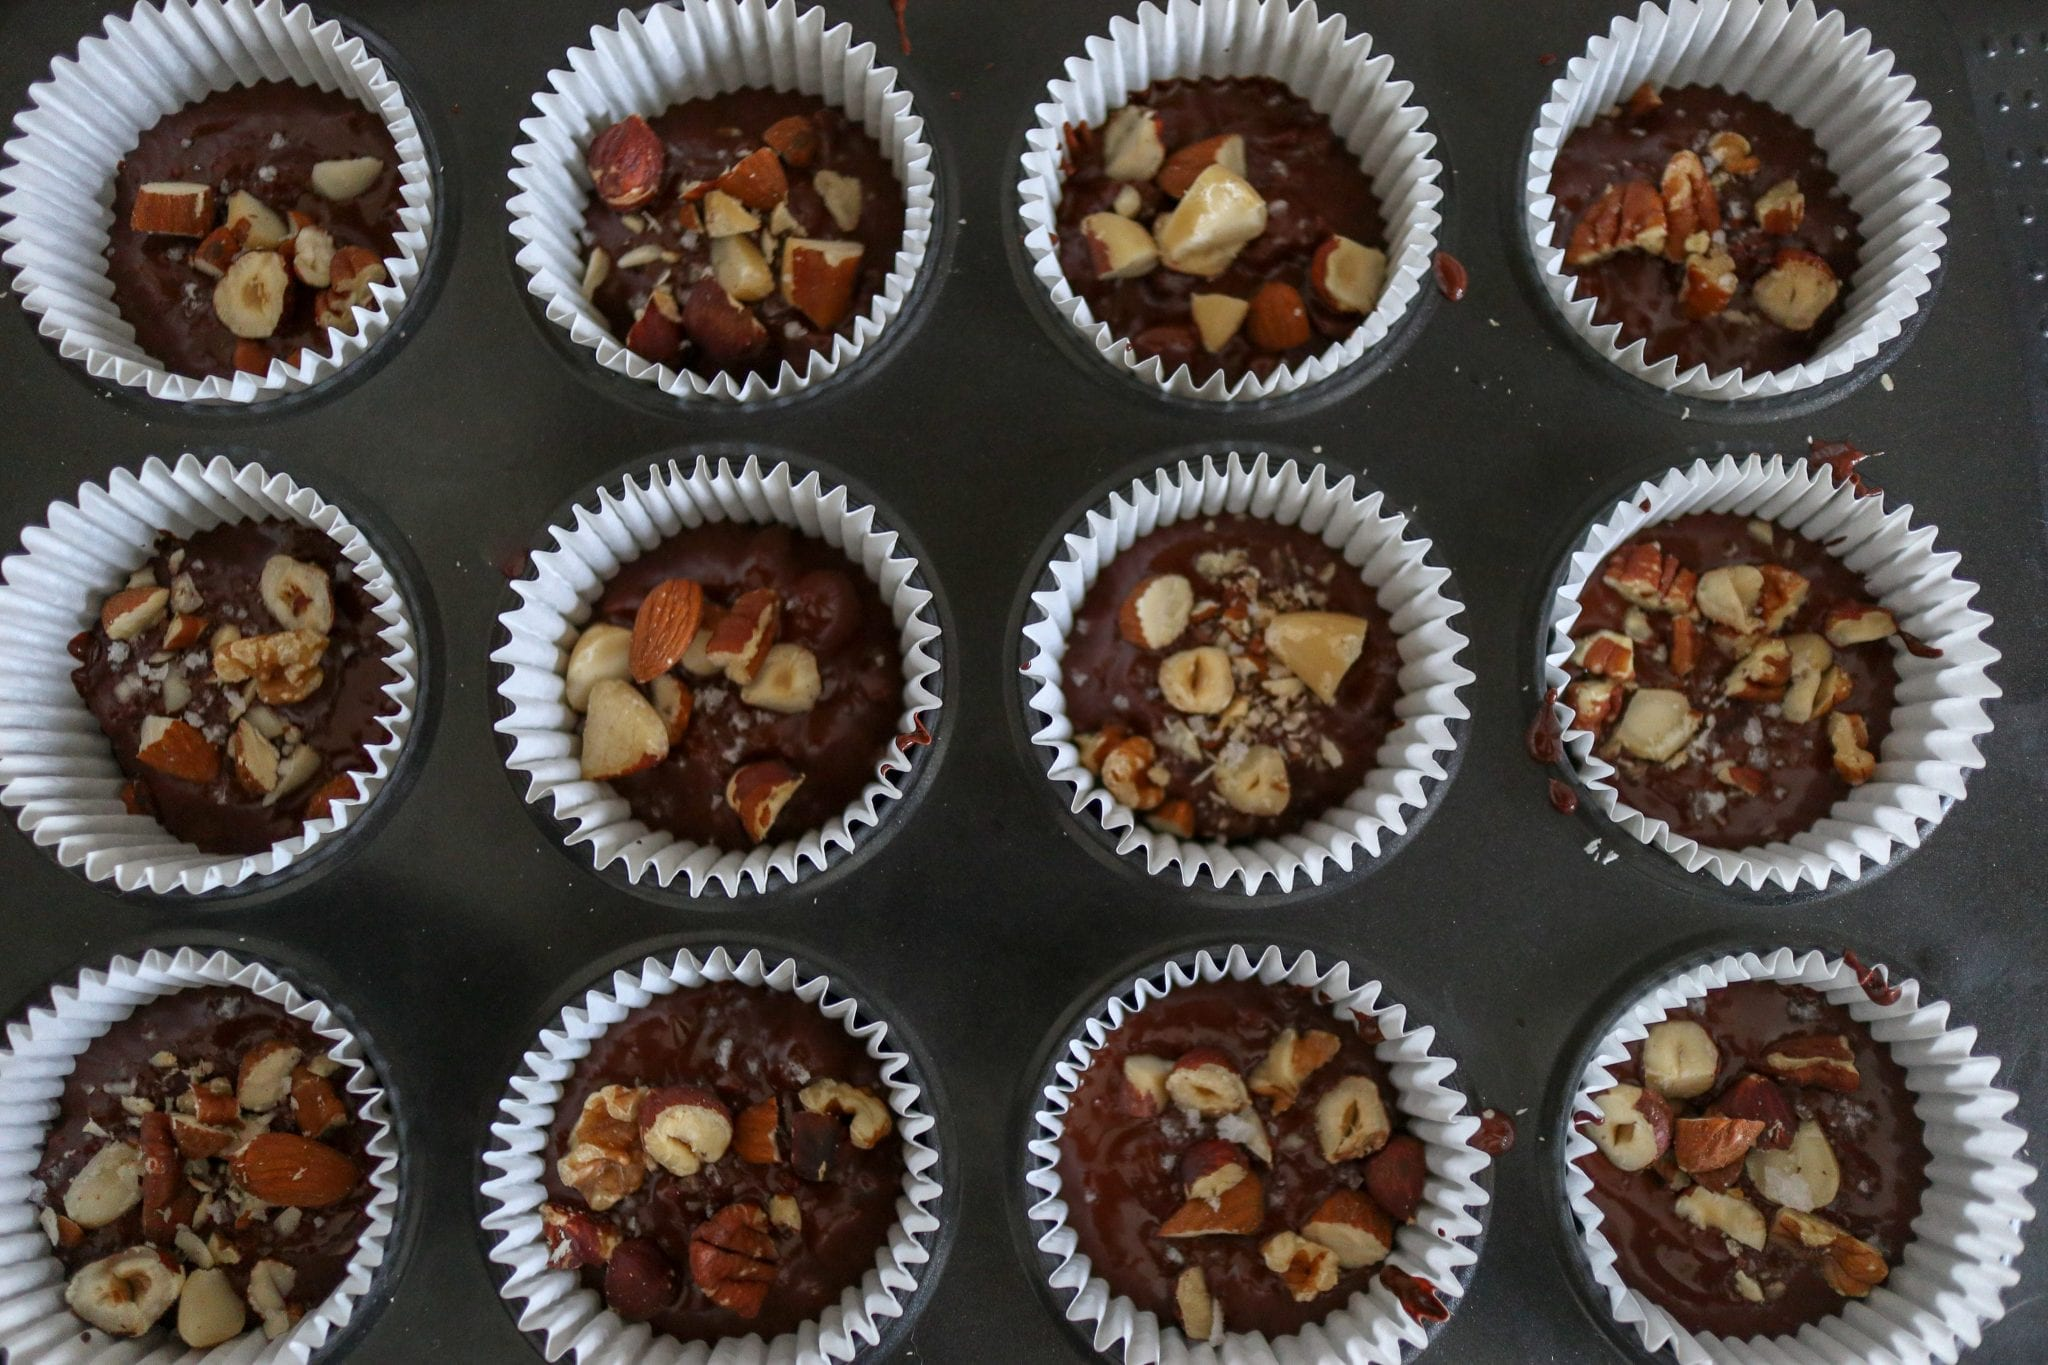 10 Minute Peanut Butter Nut Cups